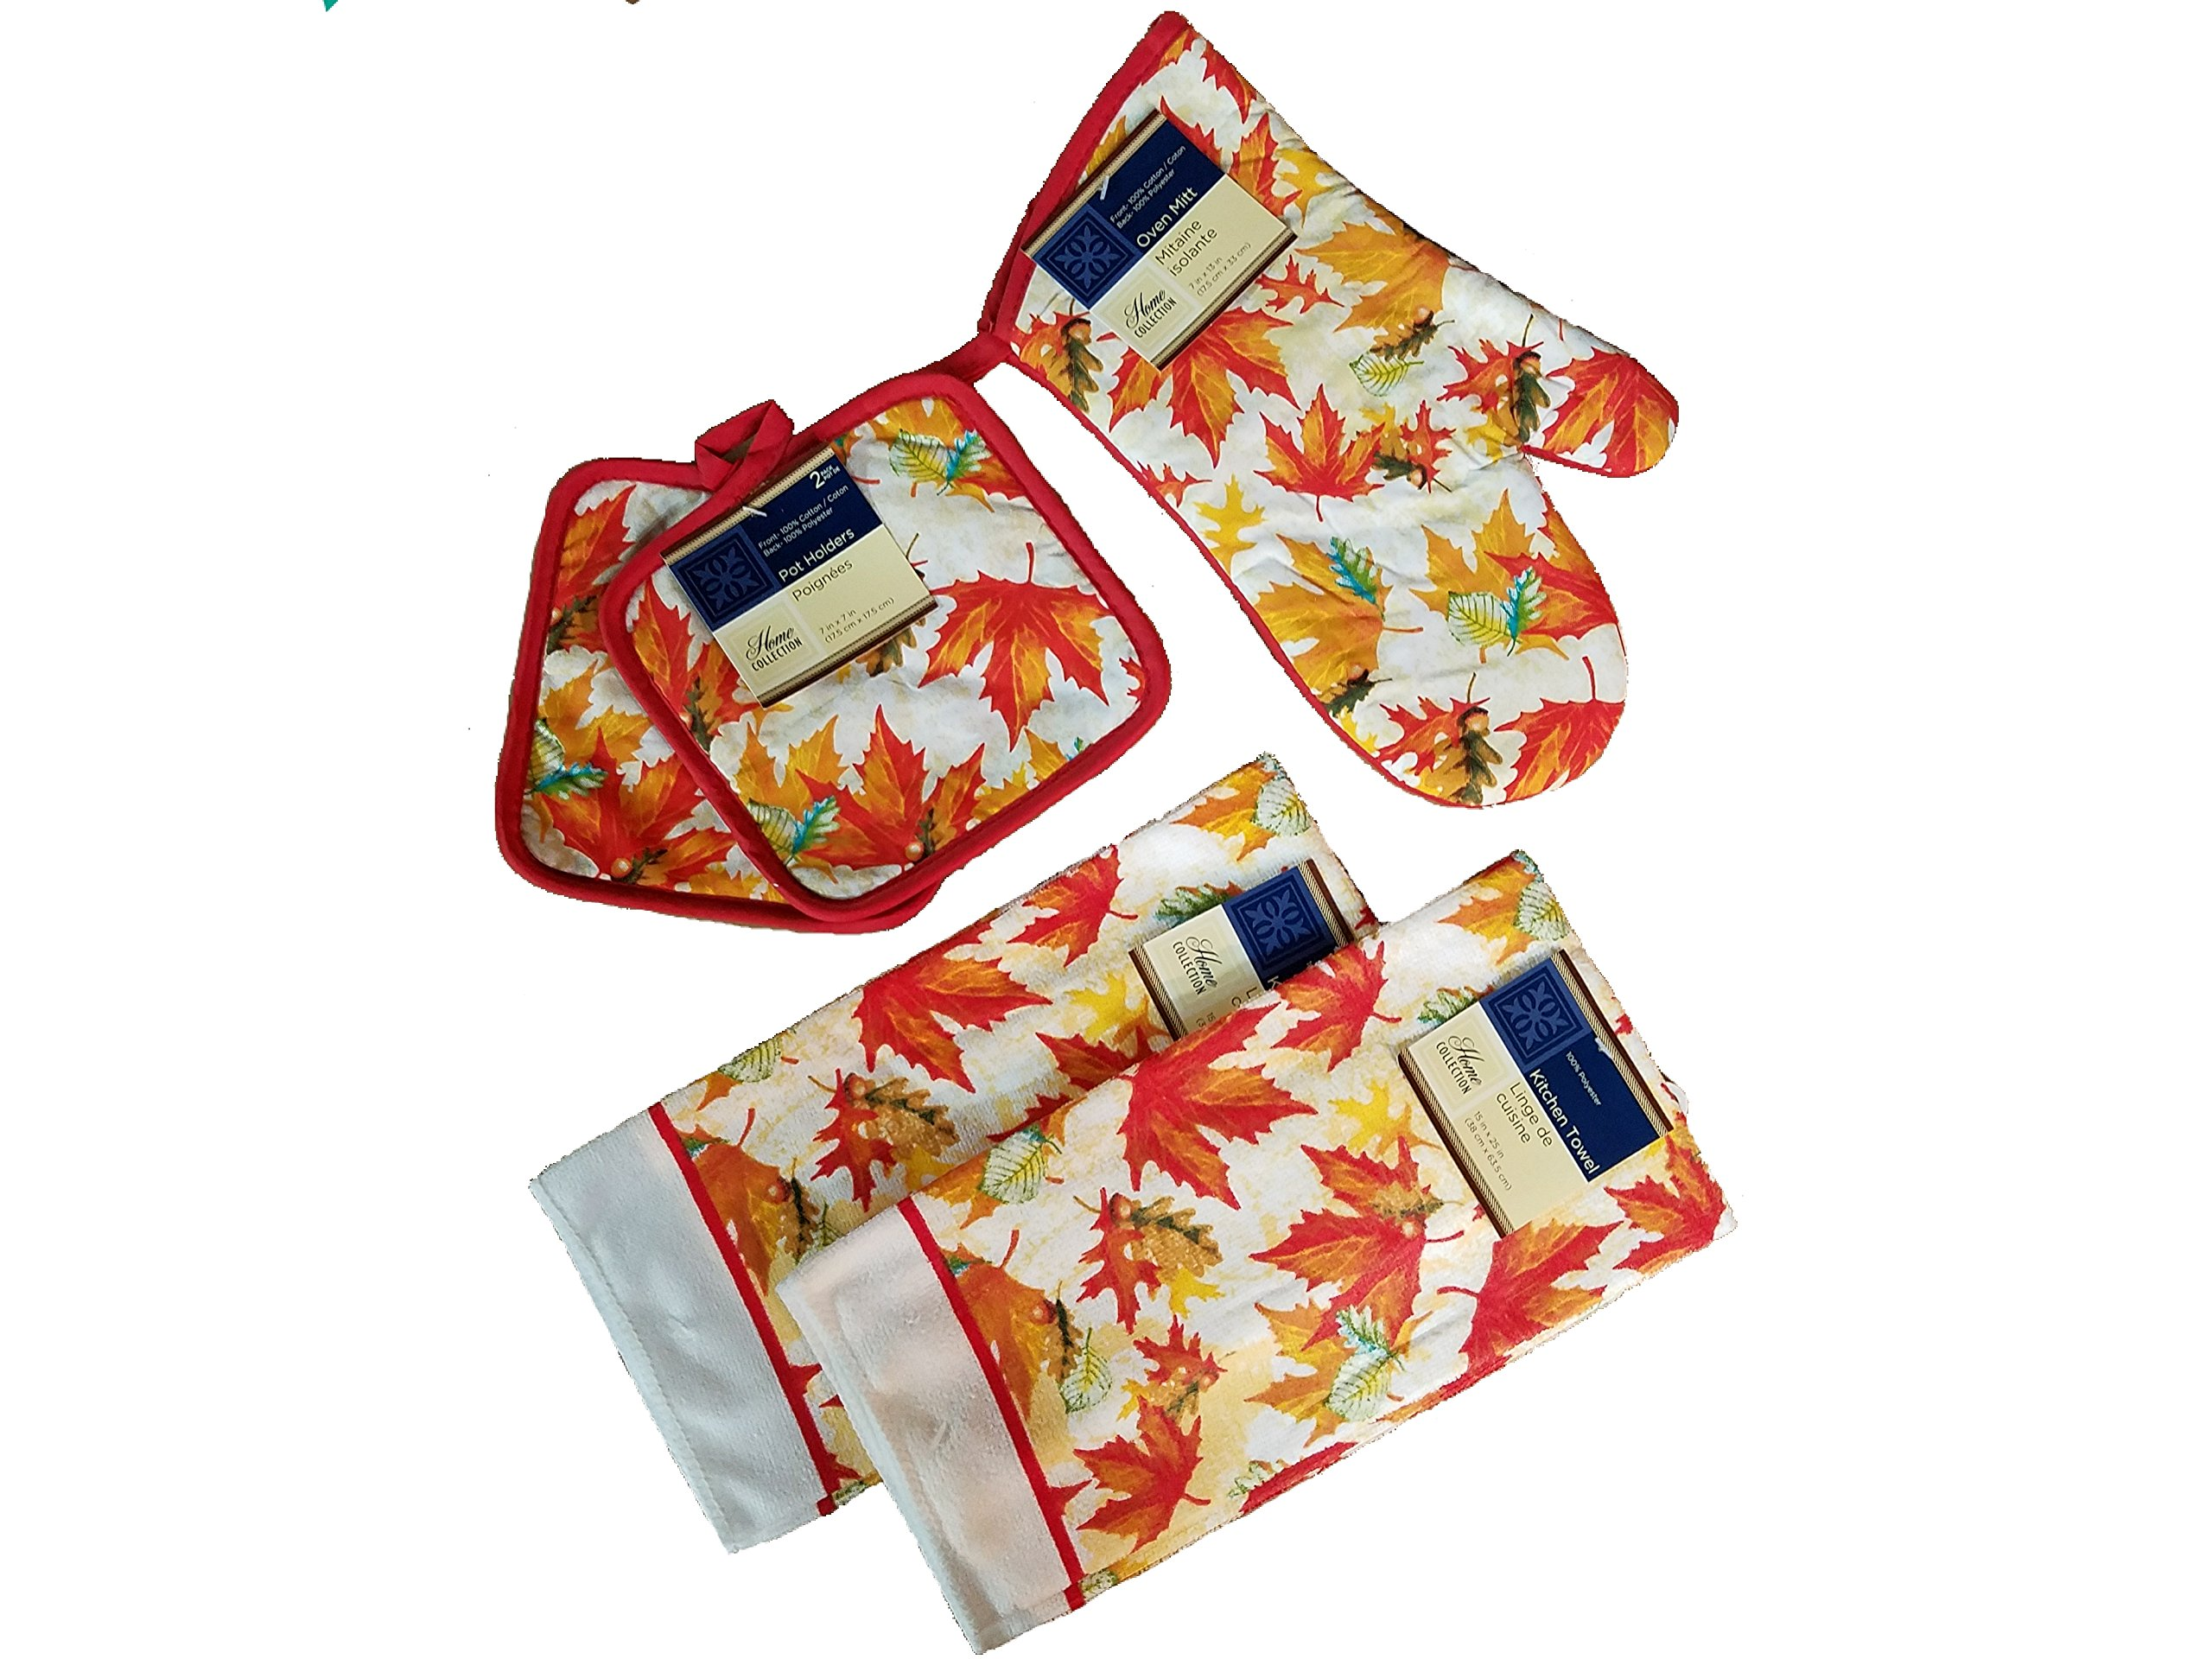 Home Collection 5 Piece Kitchen Linen Set Fall Leaves Theme! Includes: 1 Oven Mitt, 2 Pot Holders and 2 Dish Towels